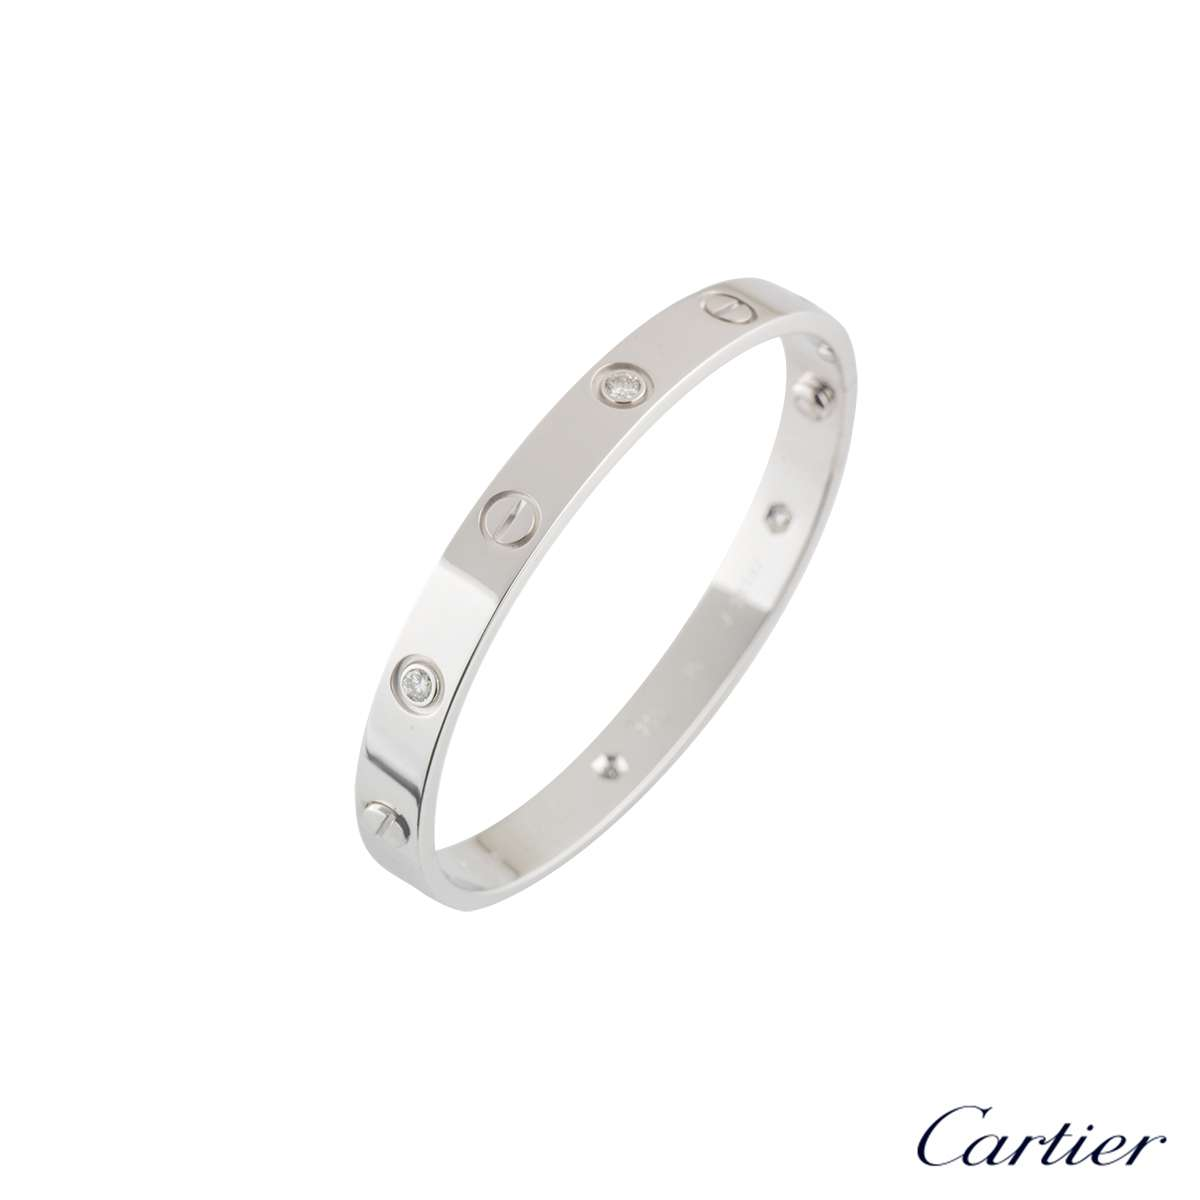 Cartier White Gold Half Diamond Love Bracelet Size 17 B6026417